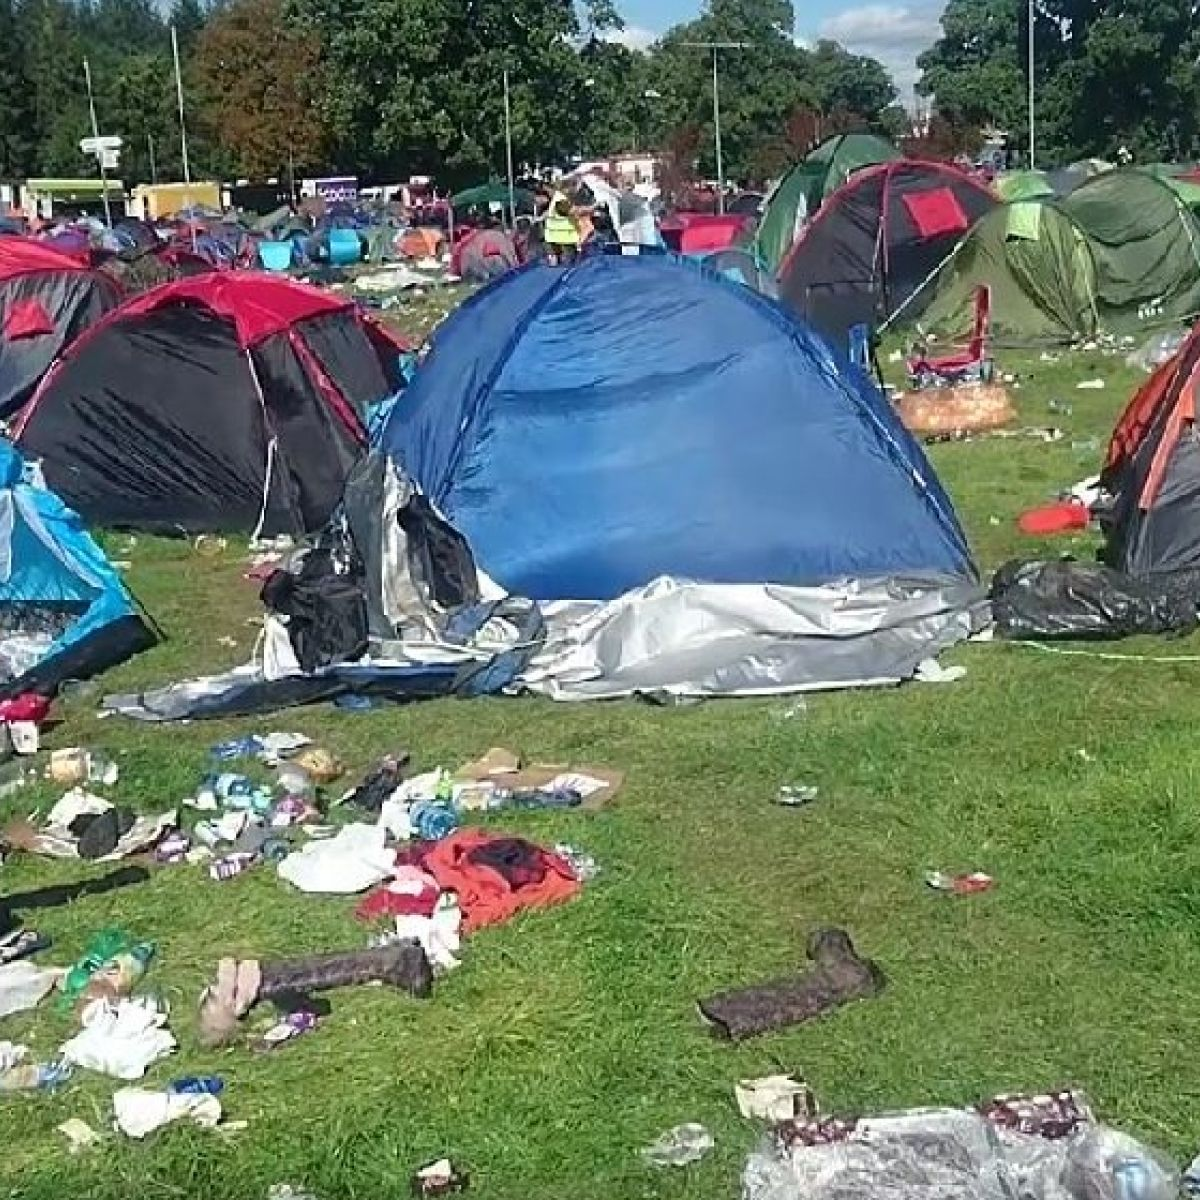 Charity Finds Most Tents Left At Electric Picnic Unusable